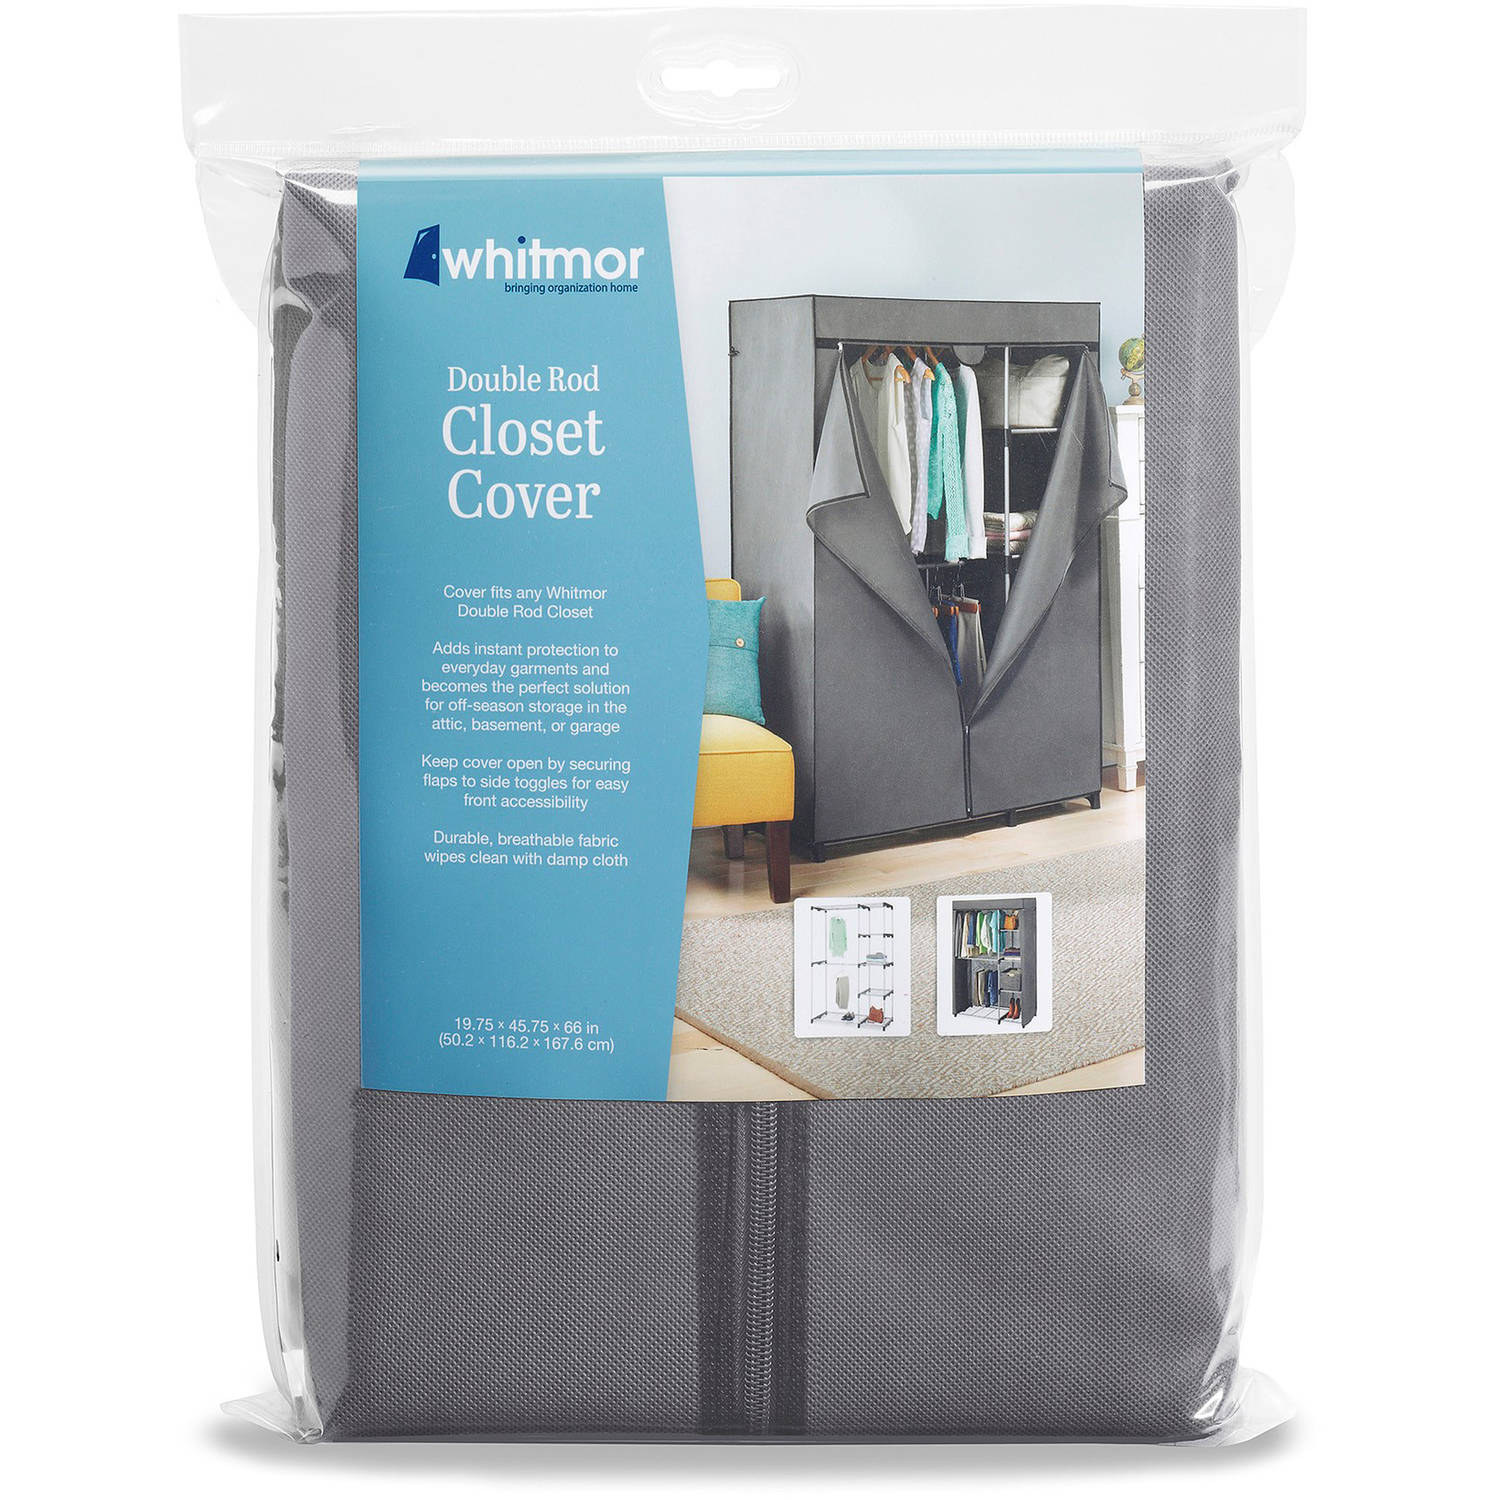 COVER ONLY for Whitmor Double Rod Closet Gray